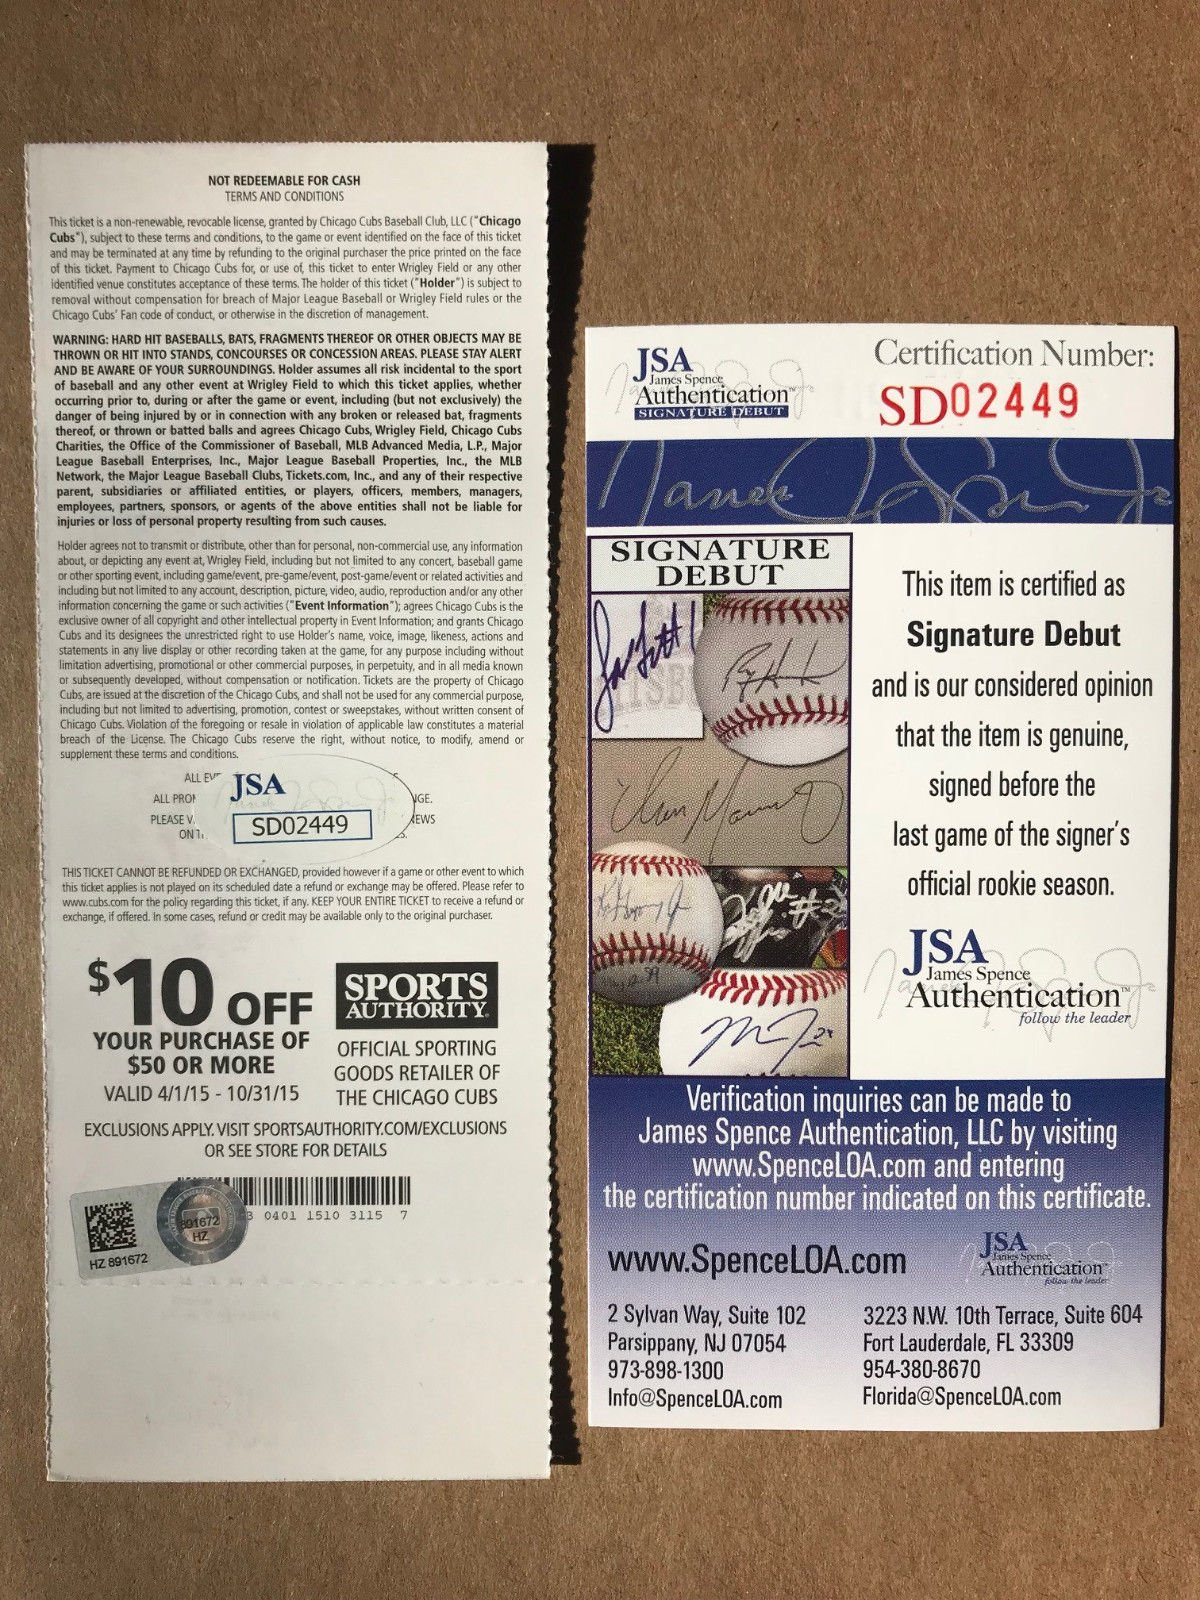 Noah Syndergaard Signed Autograph MLB Debut 5 12 15 Ticket JSA Certified MLB Certifiedated